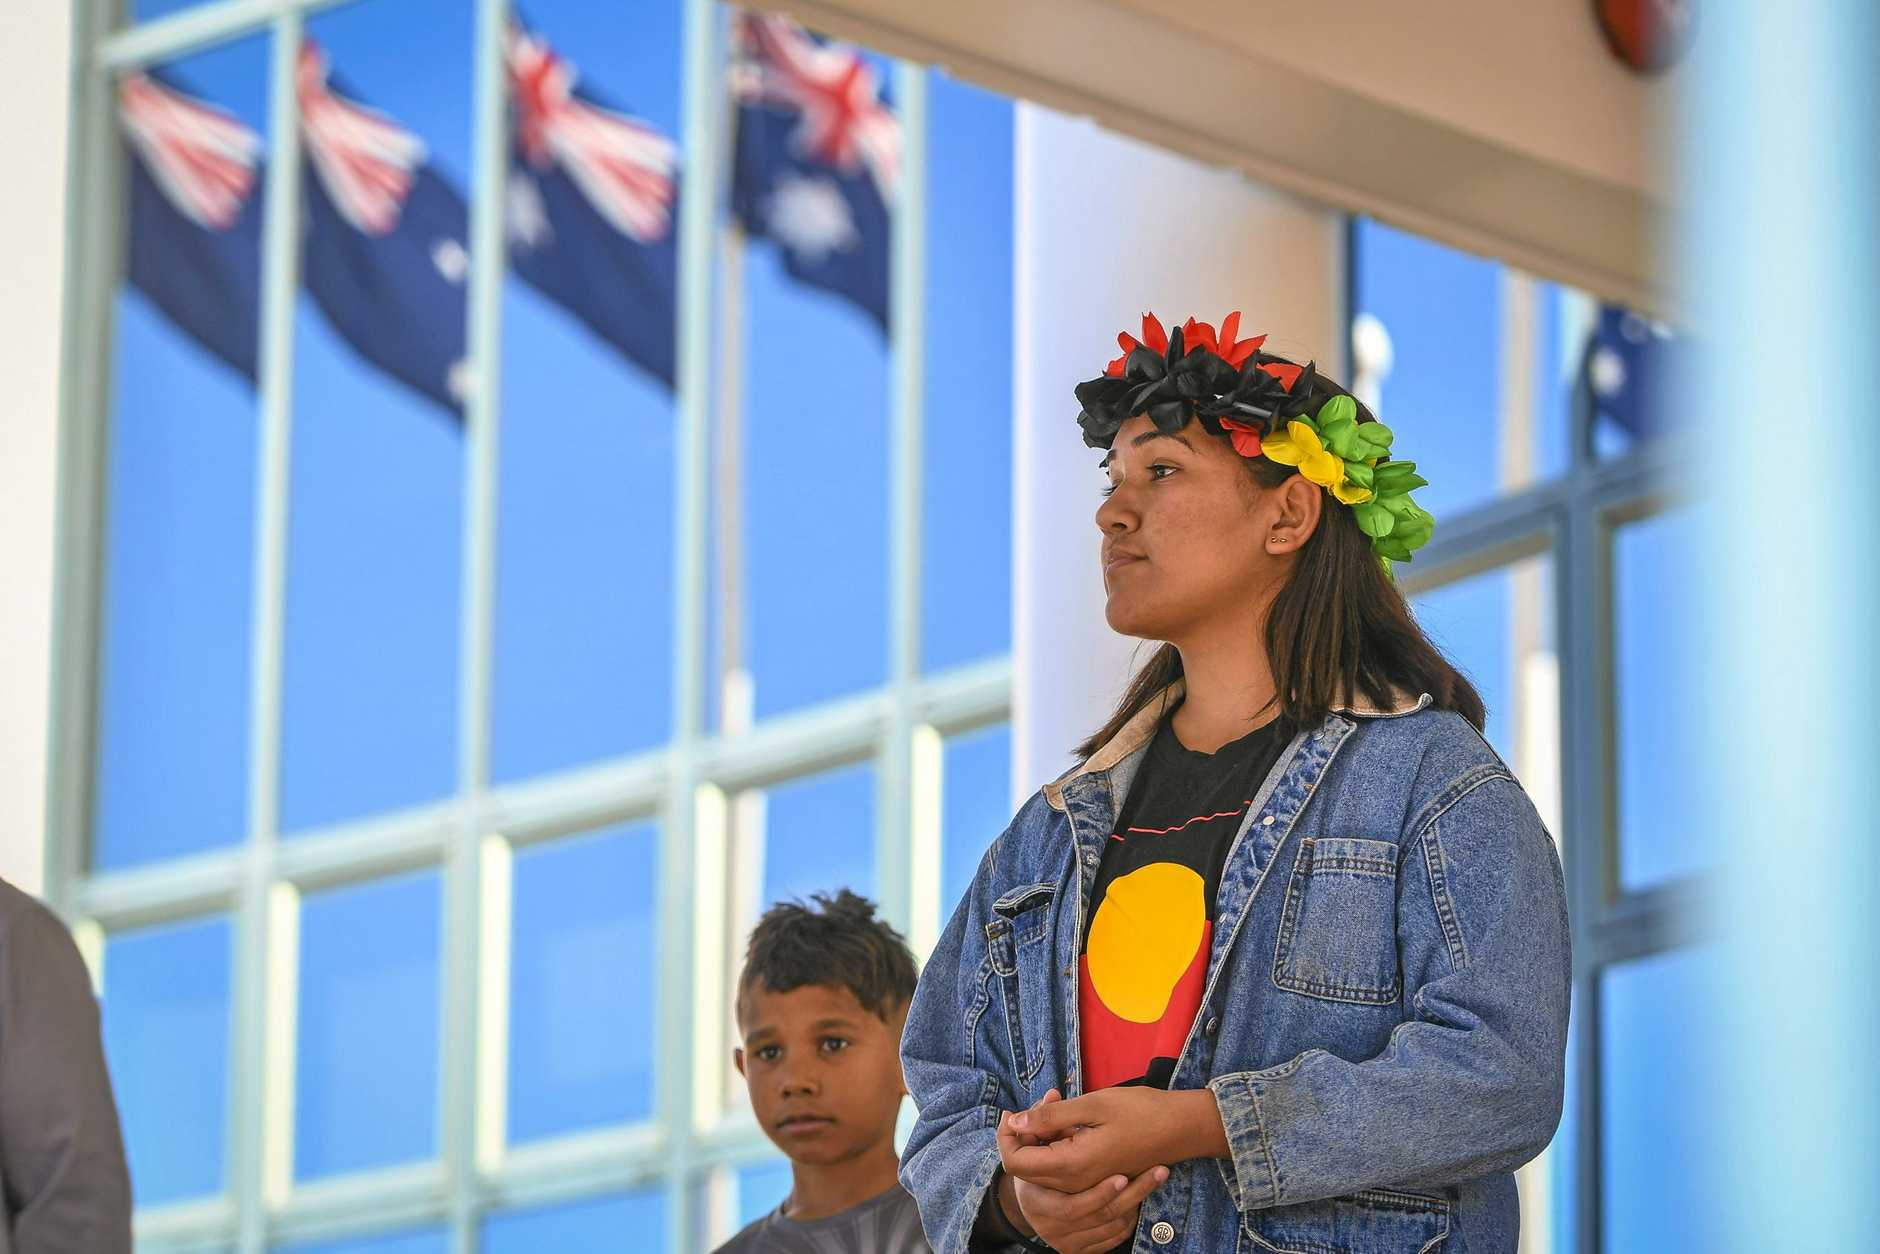 The 2019 NAIDOC week march and celebration made its way up Goondoon Street on 12 July 2019.